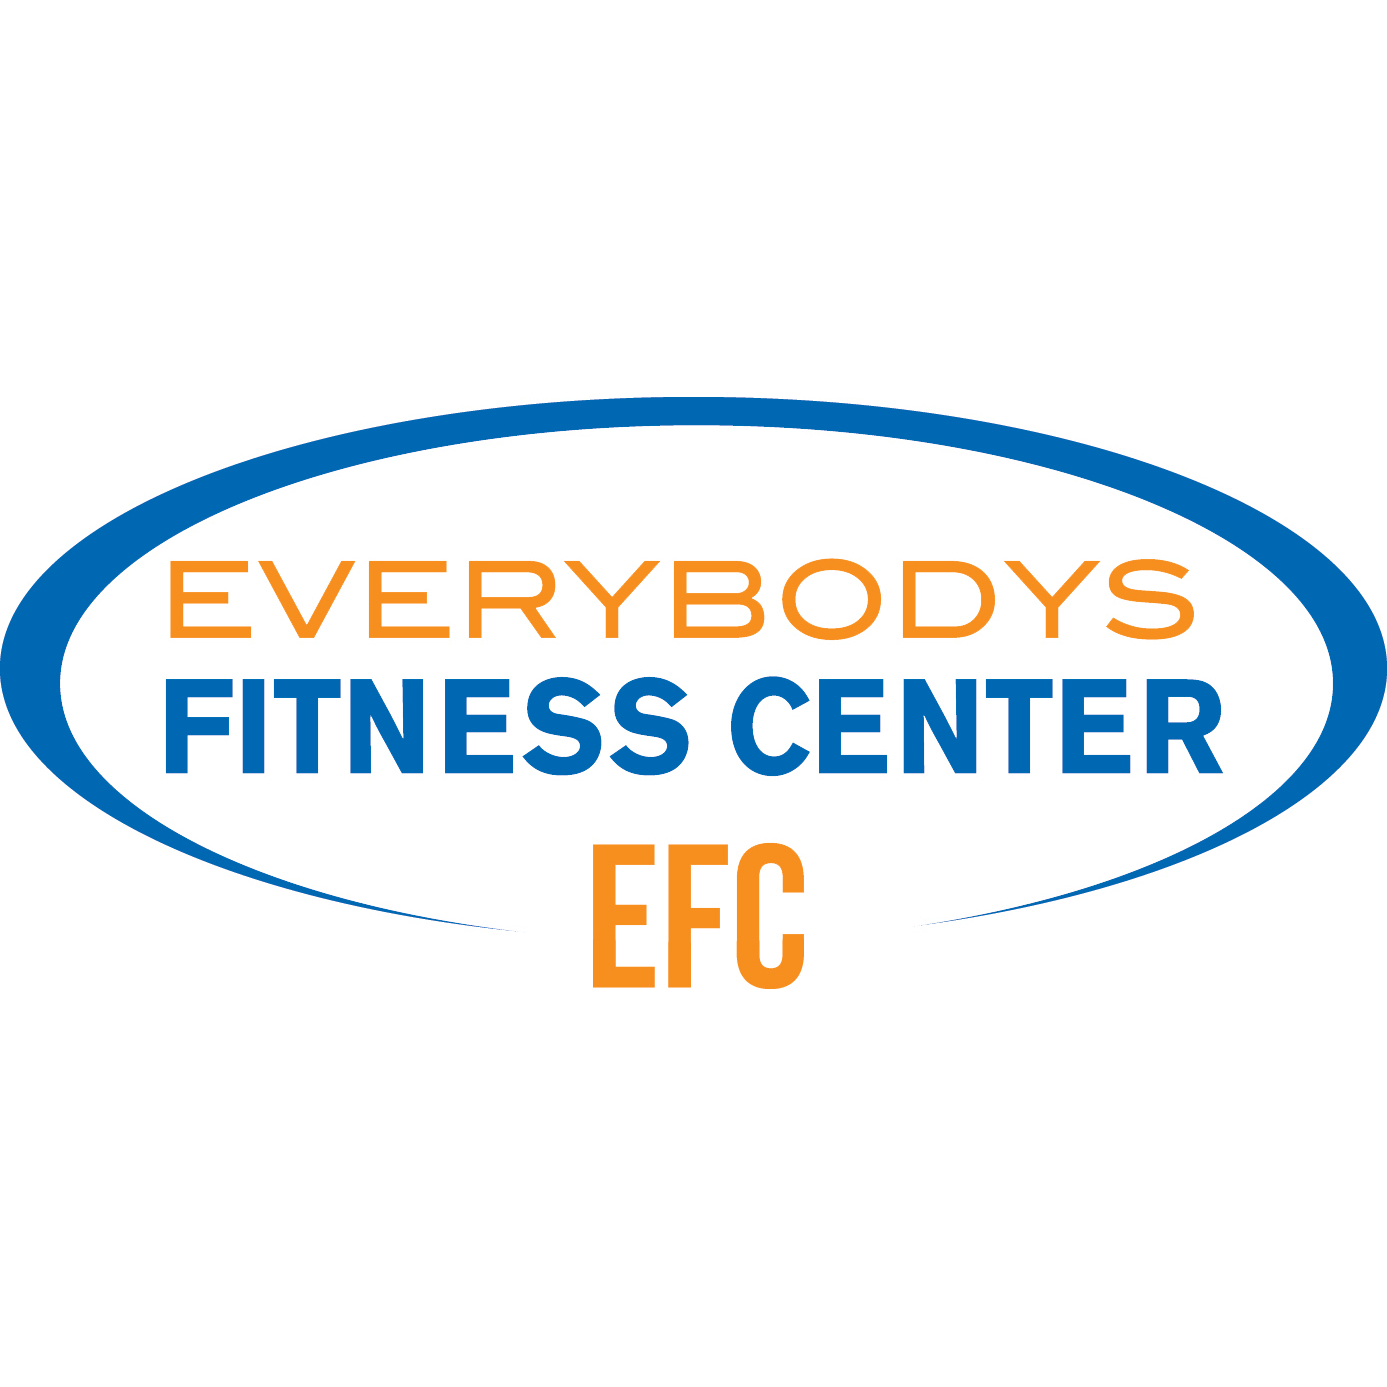 Everybodys Fitness Center